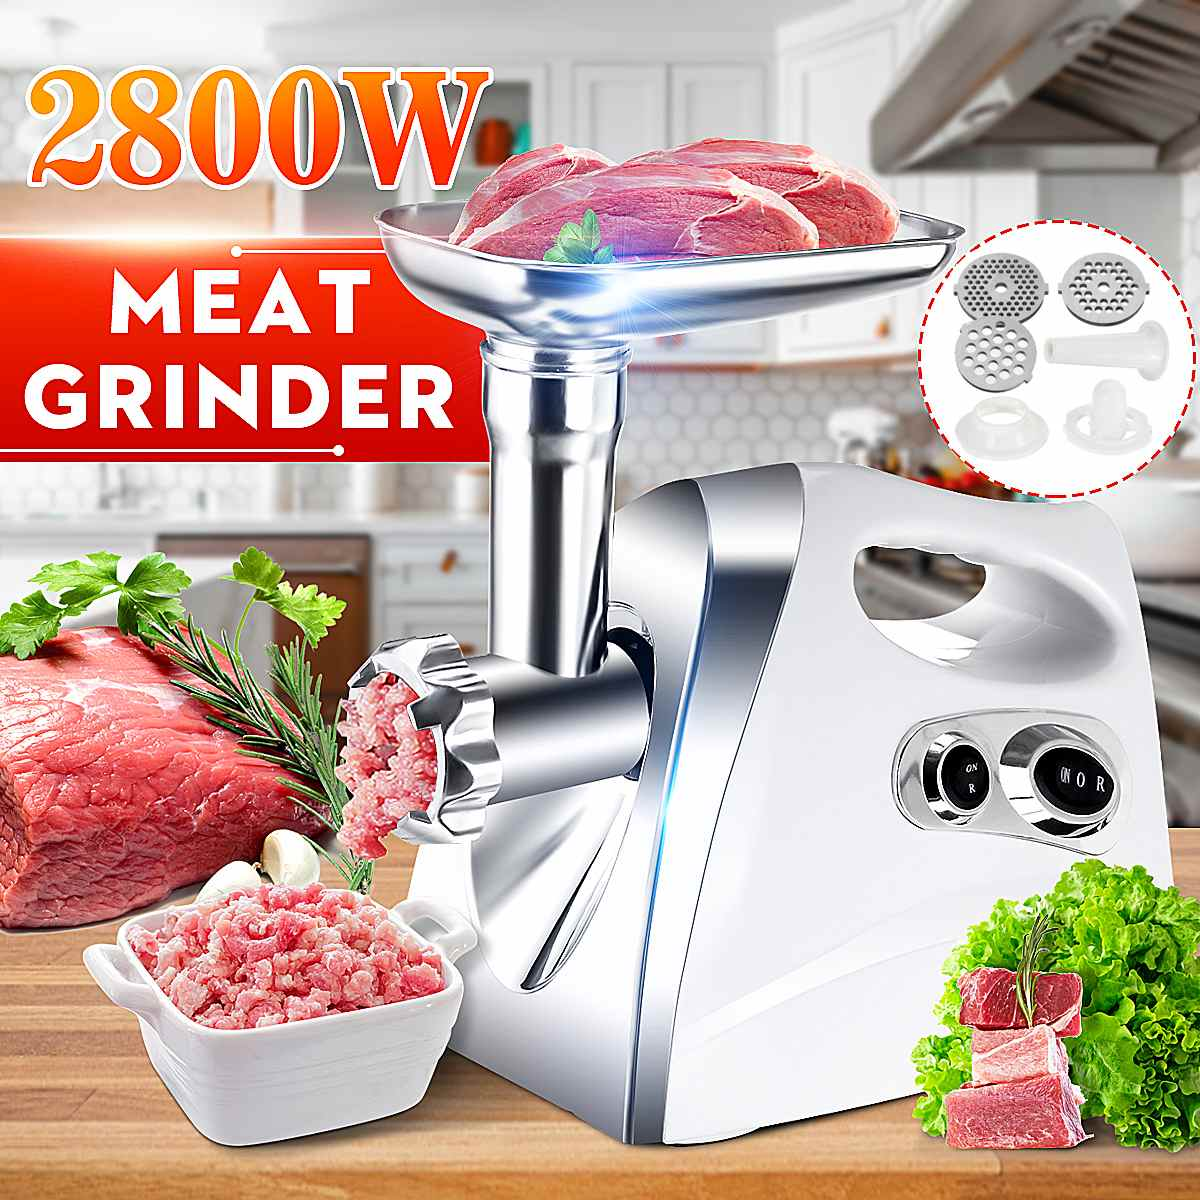 2800W Electric Meat Grinder Sausage Maker Stainless Steel Powerful Food Grinding Cutter Stuffer Meat Mincer Slicer DIY Grinders